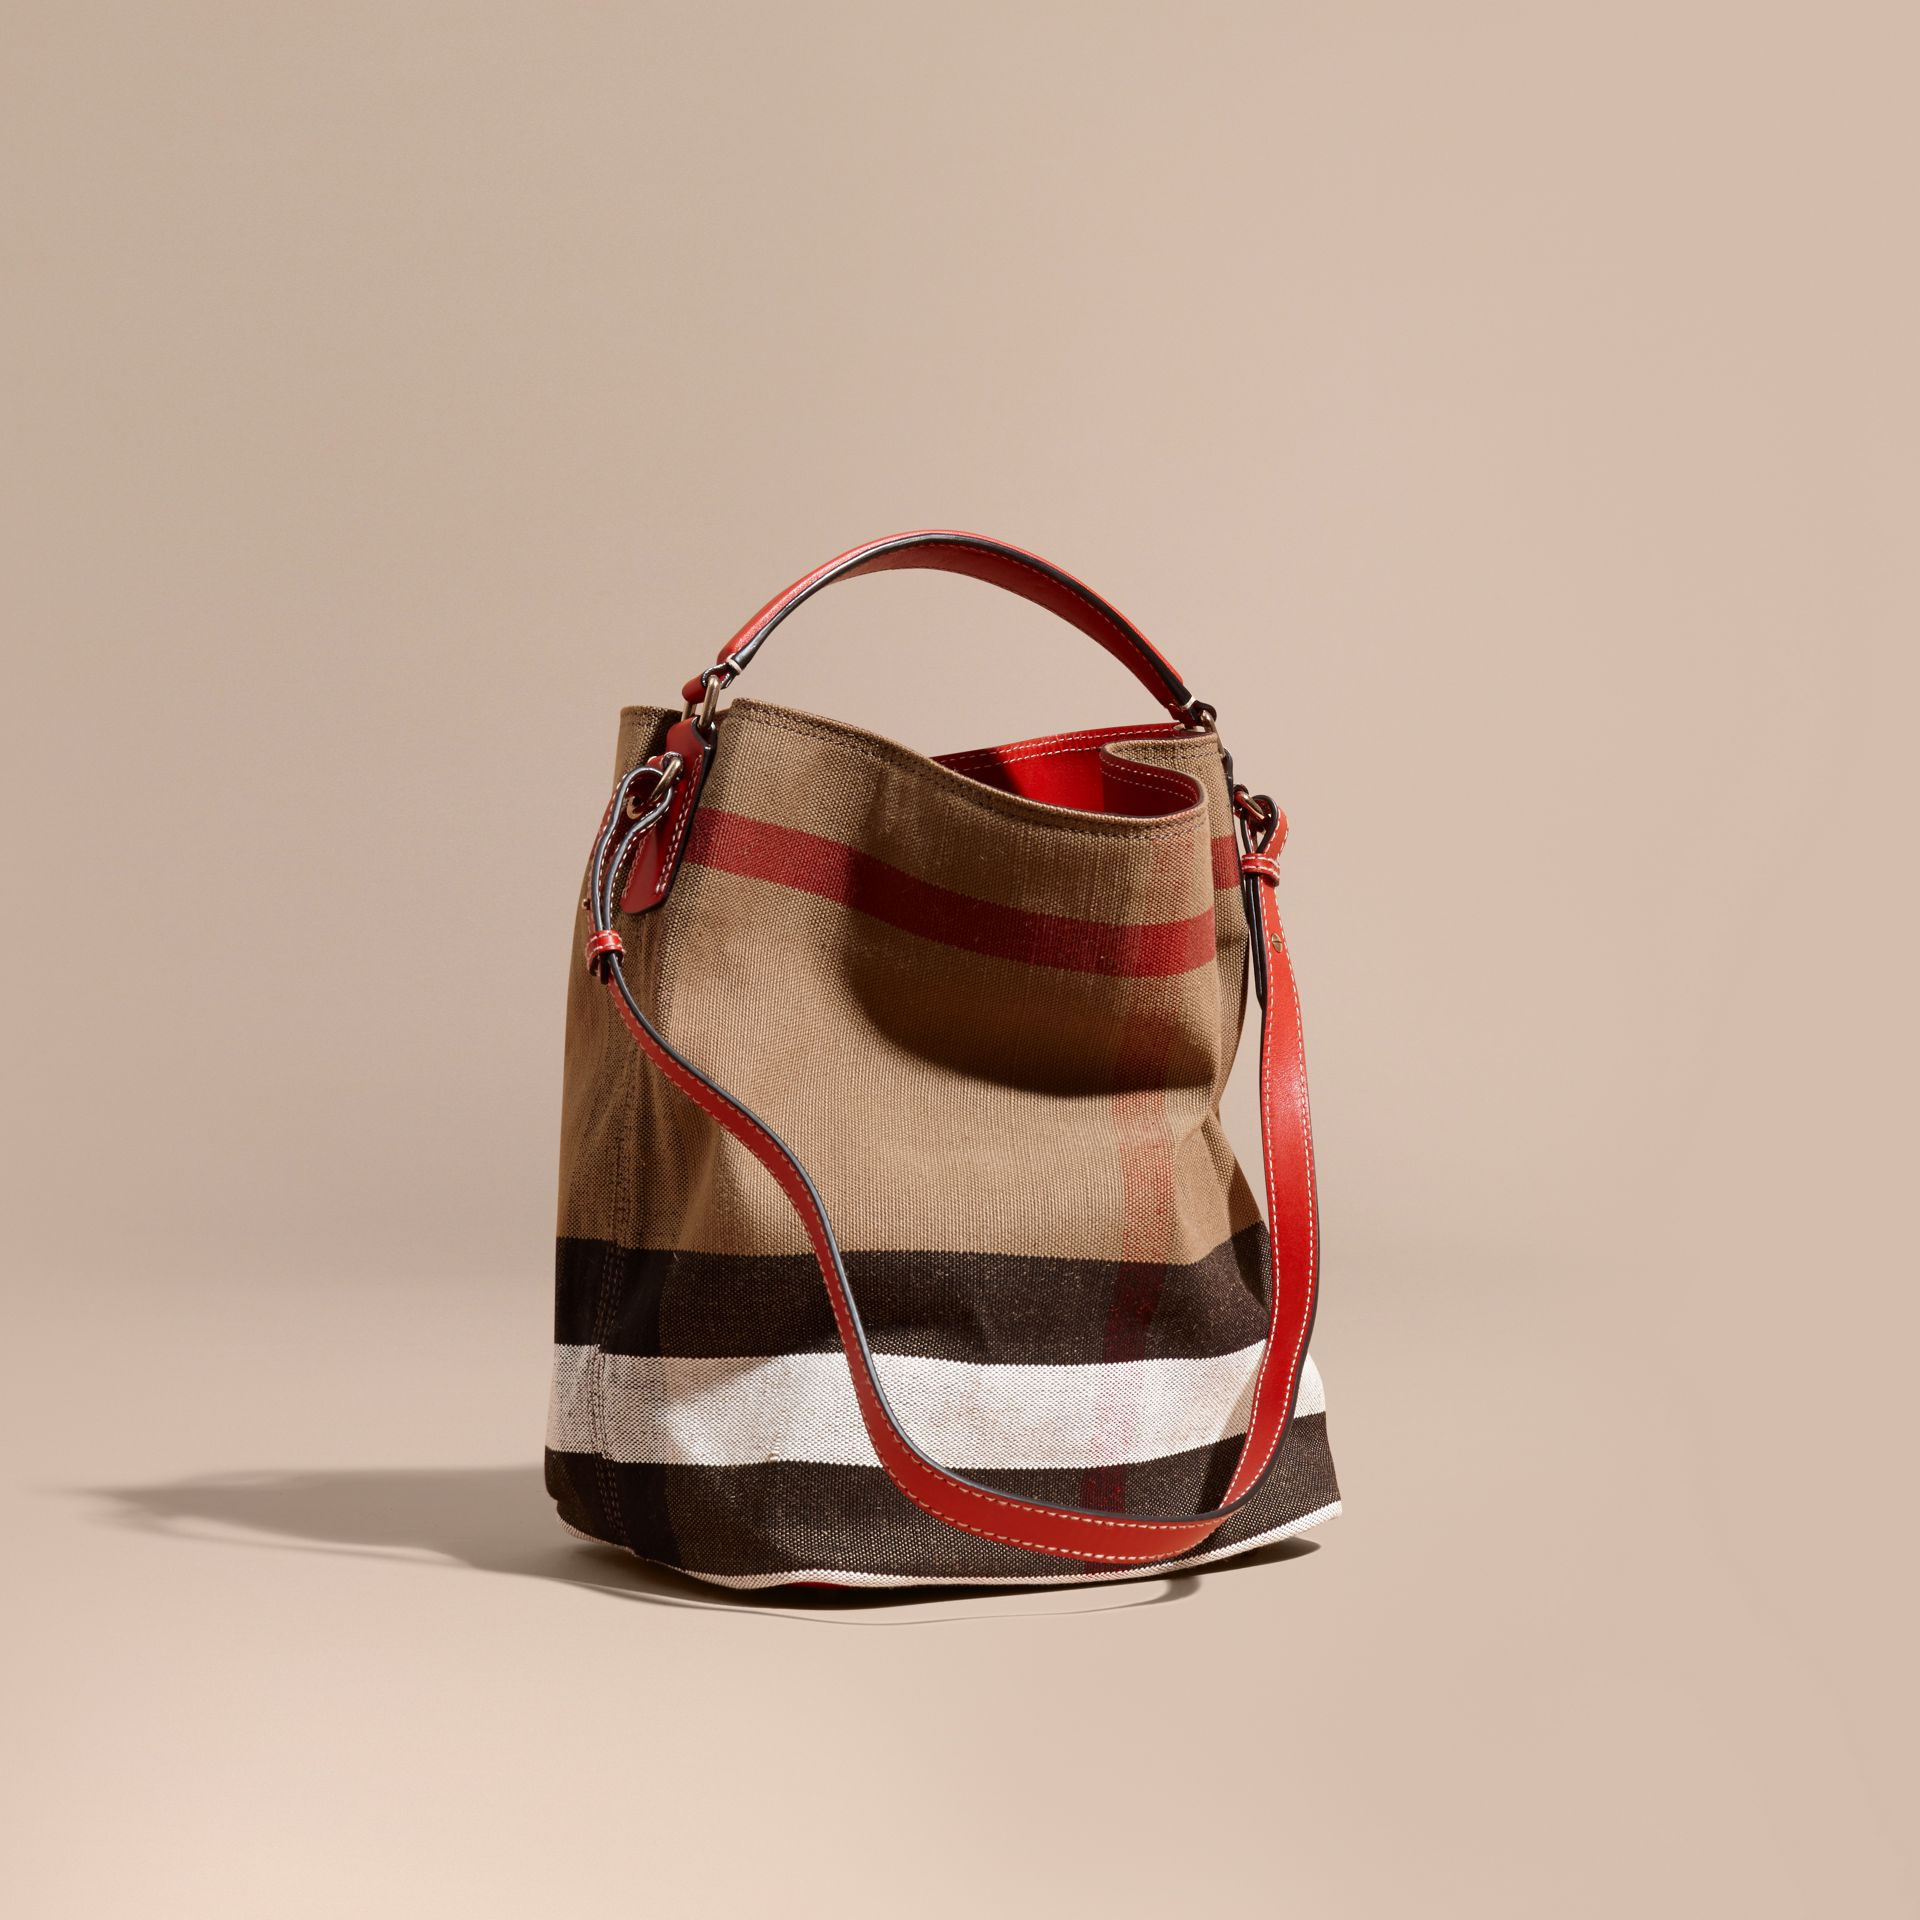 Medium Canvas Check Hobo Bag in Cadmium Red - Women | Burberry - gallery image 1